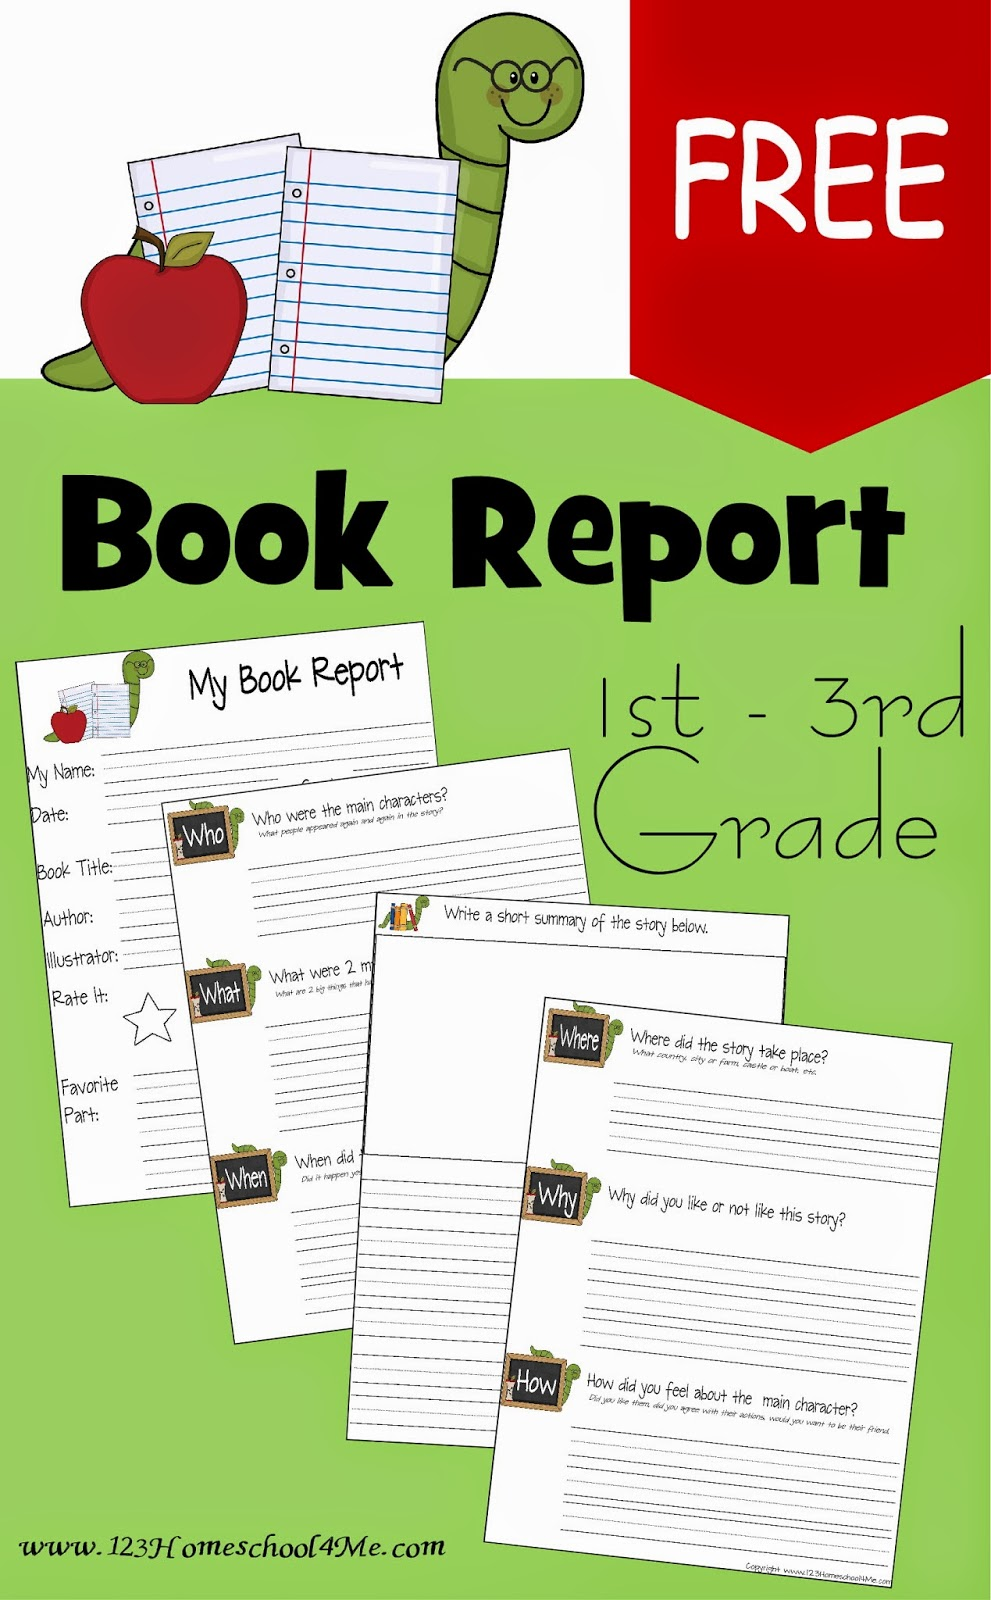 Free book report template pronofoot35fo Image collections